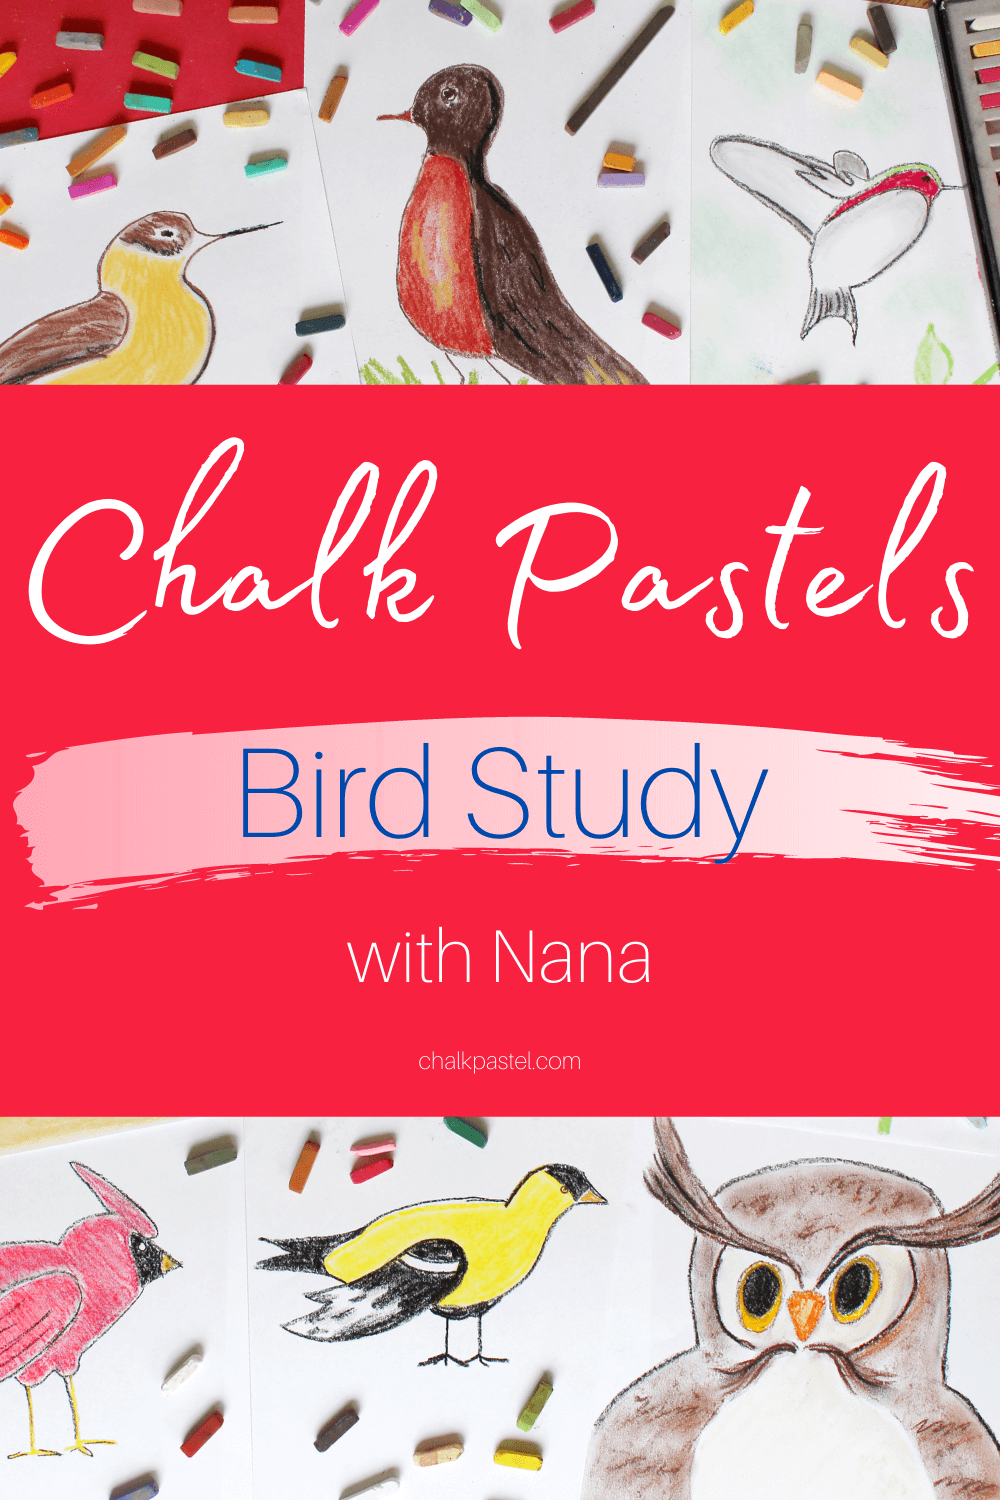 Chalk Pastels Bird Study with Nana: A chalk pastels bird study with Nana is a wonderful way to introduce bird art lessons to your kids. Chalk pastels are perfect for preschoolers to adults. They are super easy to use with no long art supply list needed. You'll love adding these vibrant birds to your next nature study or in preparation for the Great Backyard Bird Count! #chalkpastels #YouAREAnArtist #birdartlessons #birdartlessonsforkids #birdnaturestudy #backyardbirds #birdlessons #ChalkPastelsBirdStudywithNana